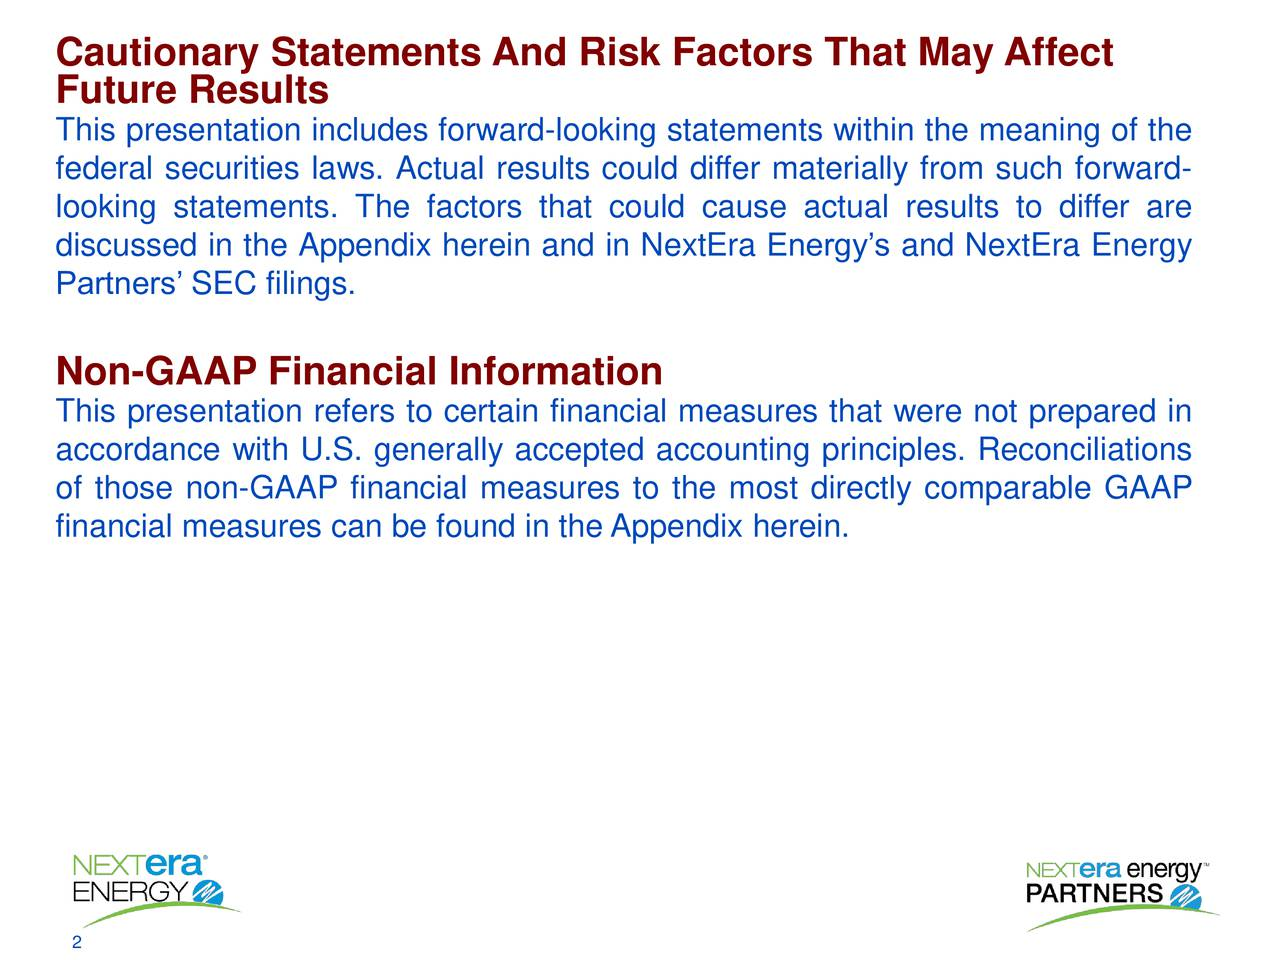 Future Results This presentation includes forward-looking statements within the meaning of the federal securities laws. Actual results could differ materially from such forward- looking statements. The factors that could cause actual results to differ are discussed in the Appendix herein and in NextEra Energys and NextEra Energy Partners SEC filings. Non-GAAP Financial Information This presentation refers to certain financial measures that were not prepared in accordance with U.S. generally accepted accounting principles. Reconciliations of those non-GAAP financial measures to the most directly comparable GAAP financial measures can be found in the Appendix herein.